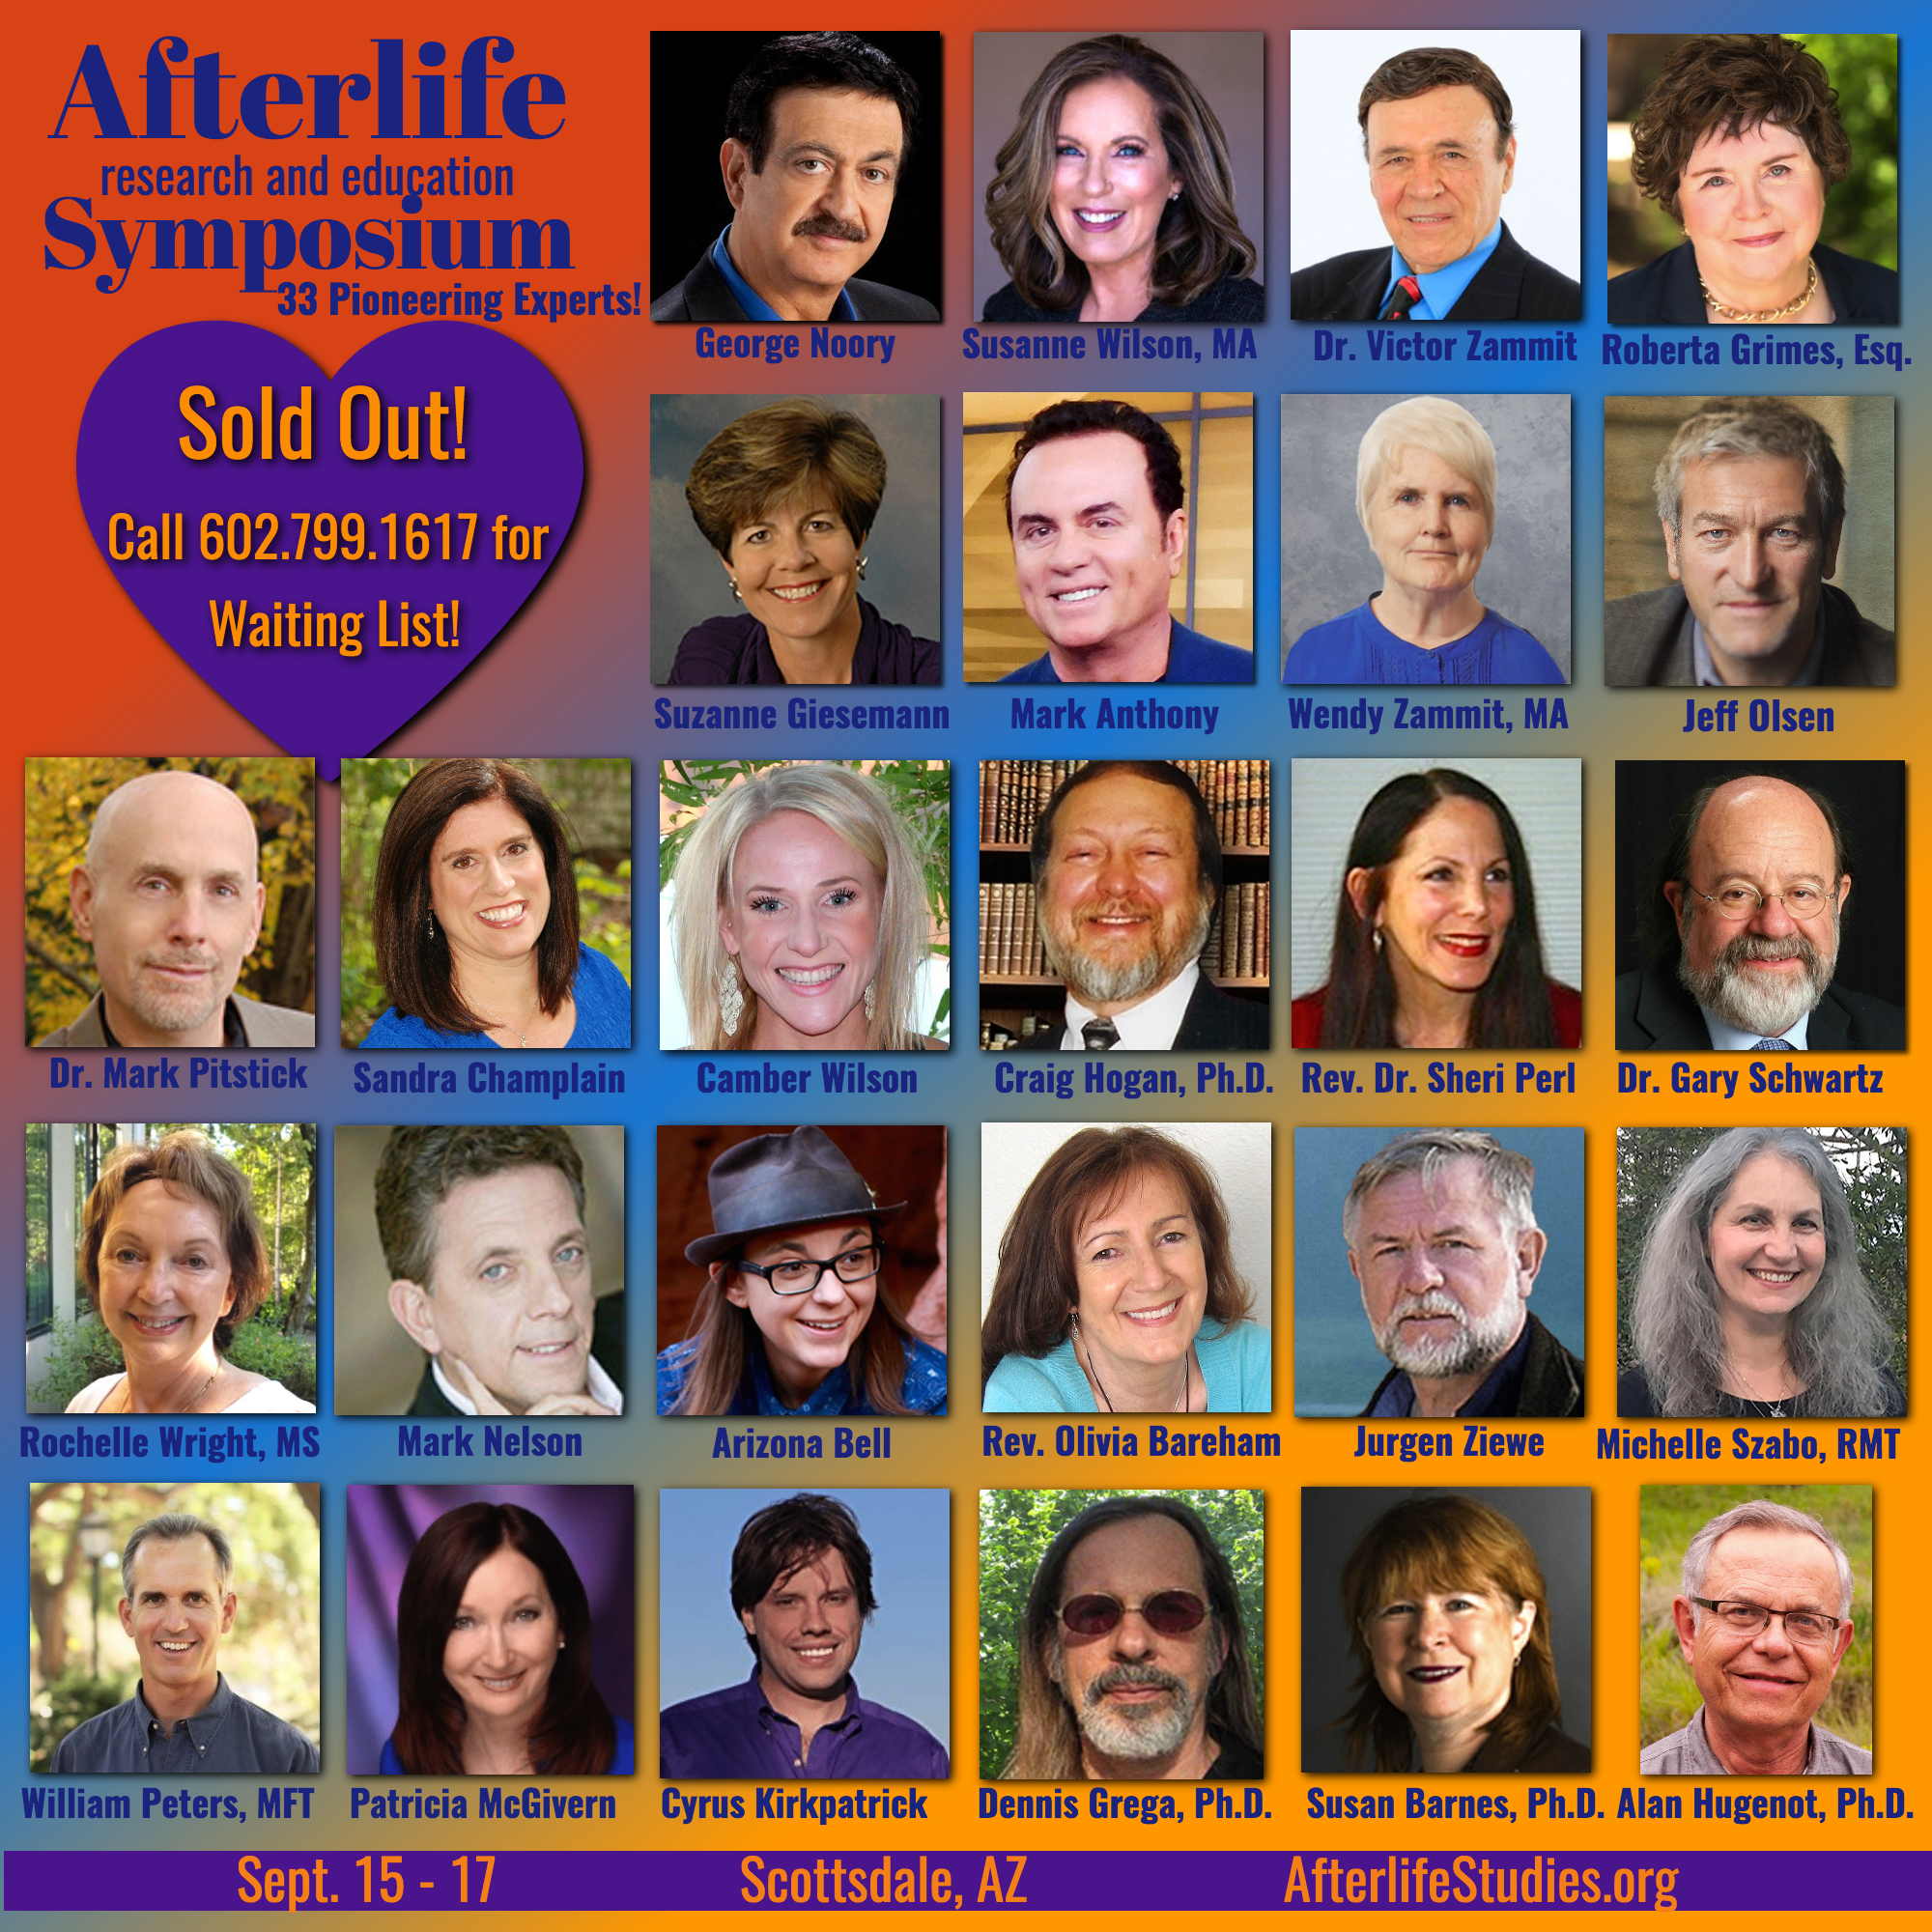 Afterlife Research & Education Symposium banner